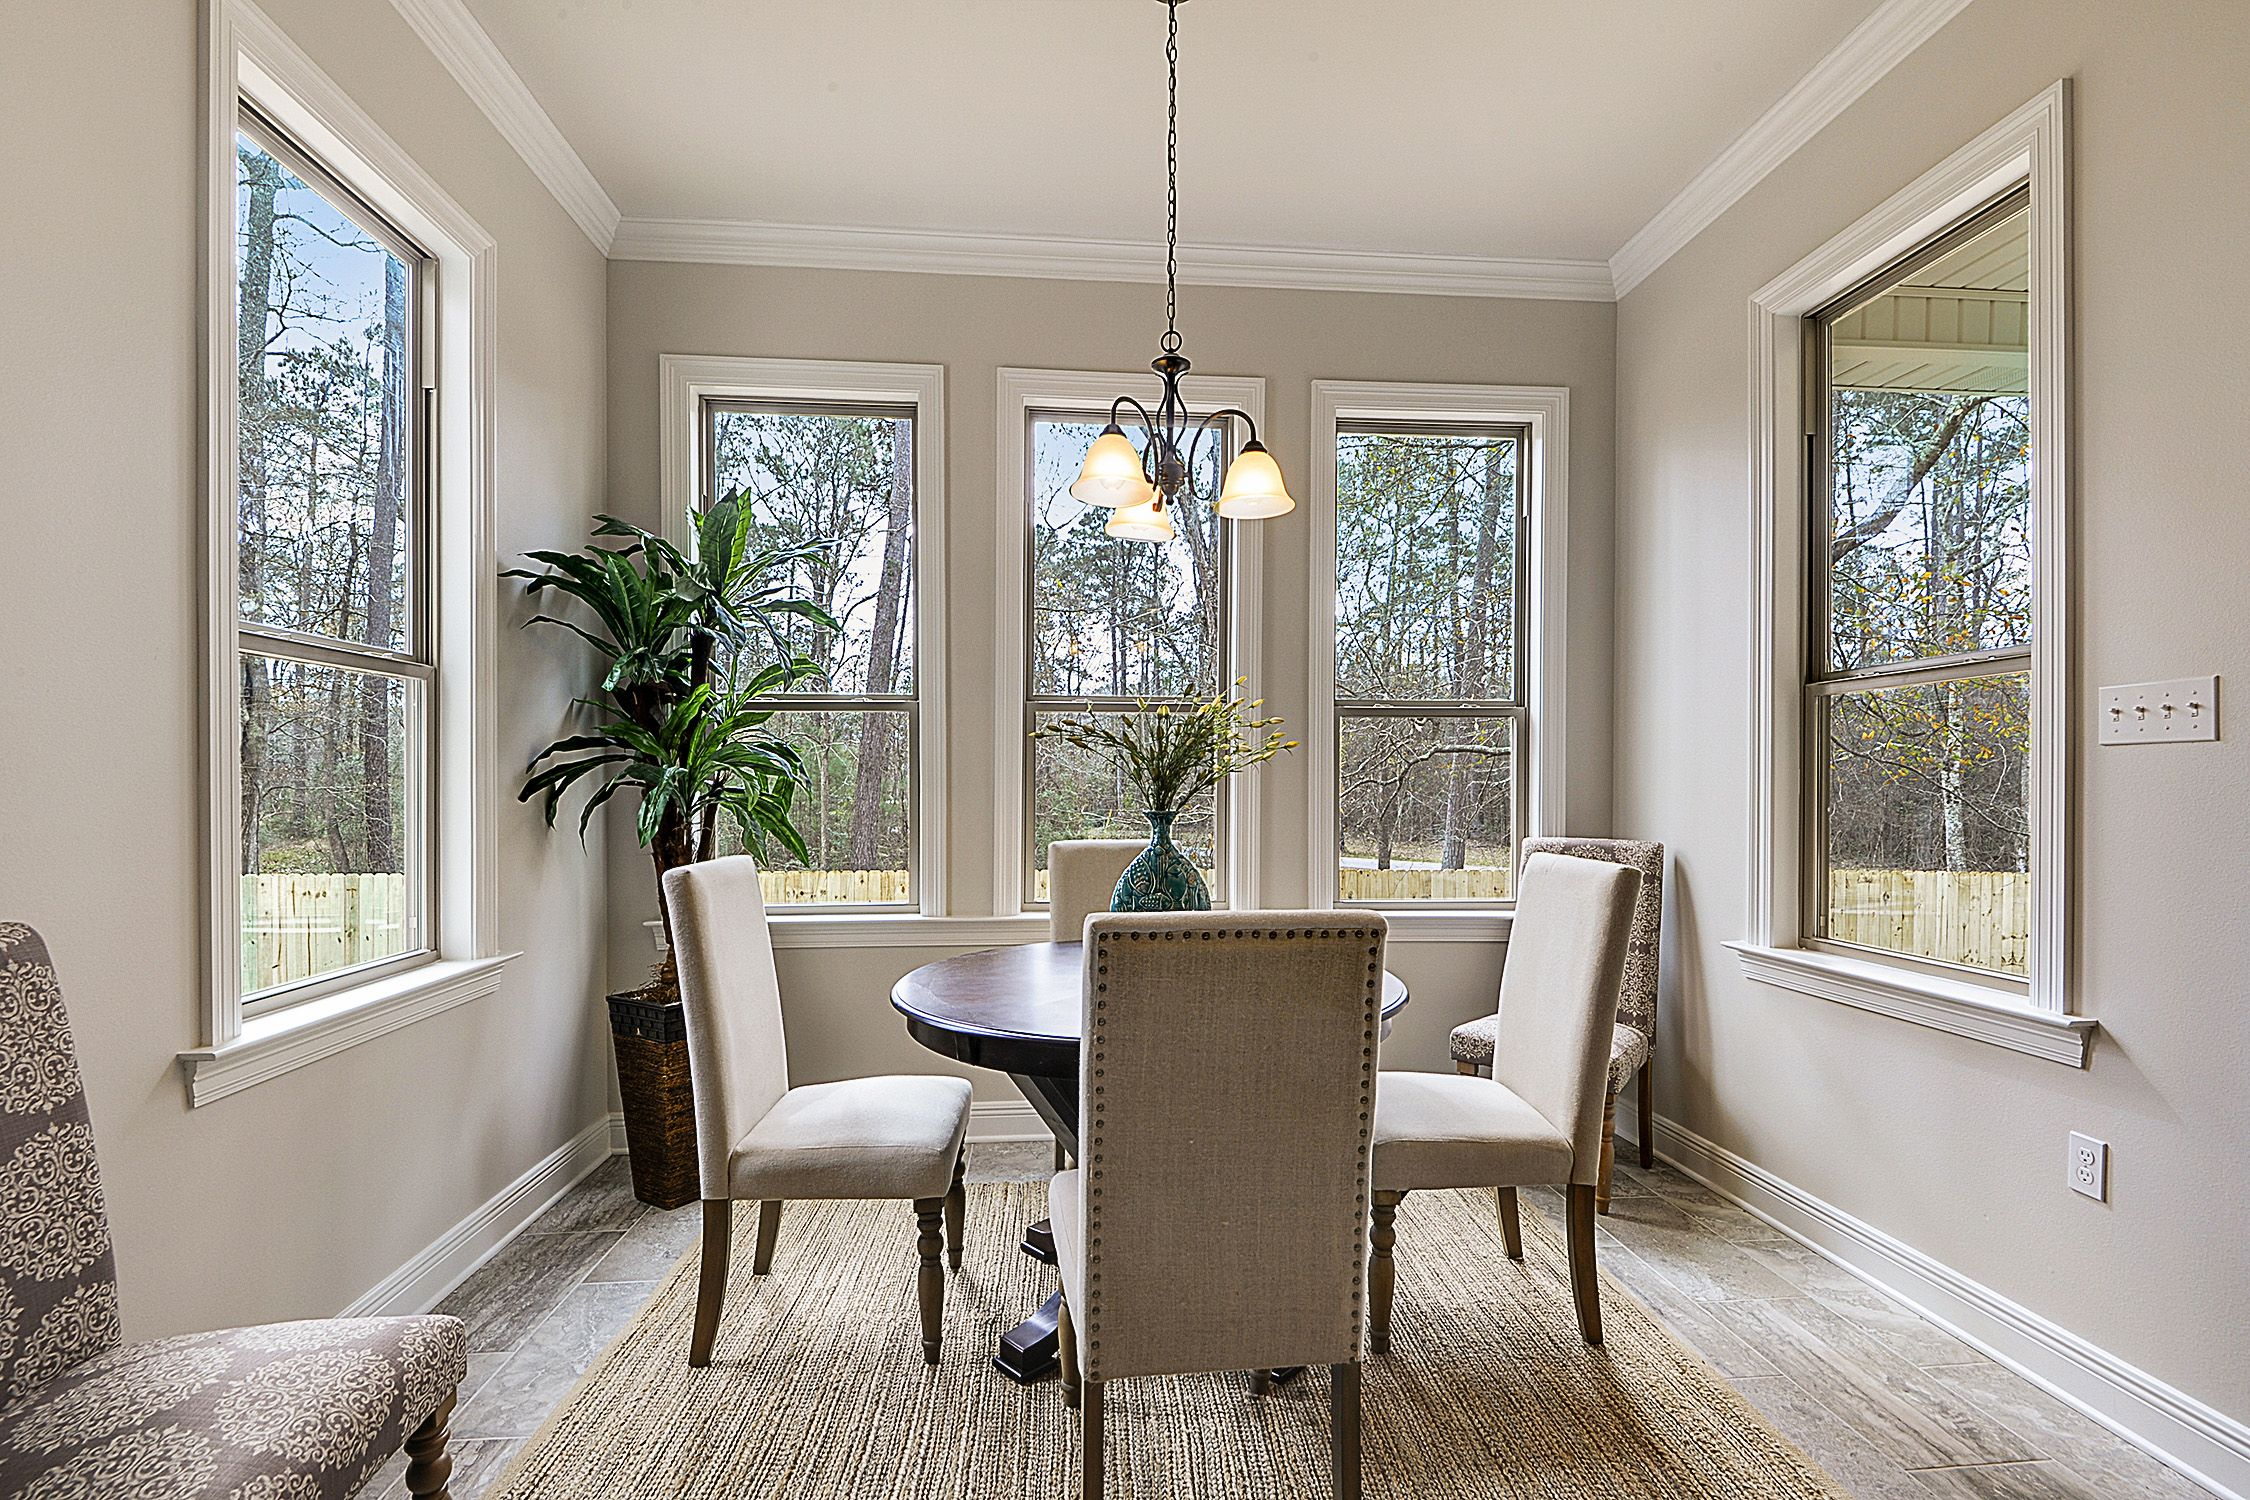 The breakfast nook/eating area is surrounded by windows